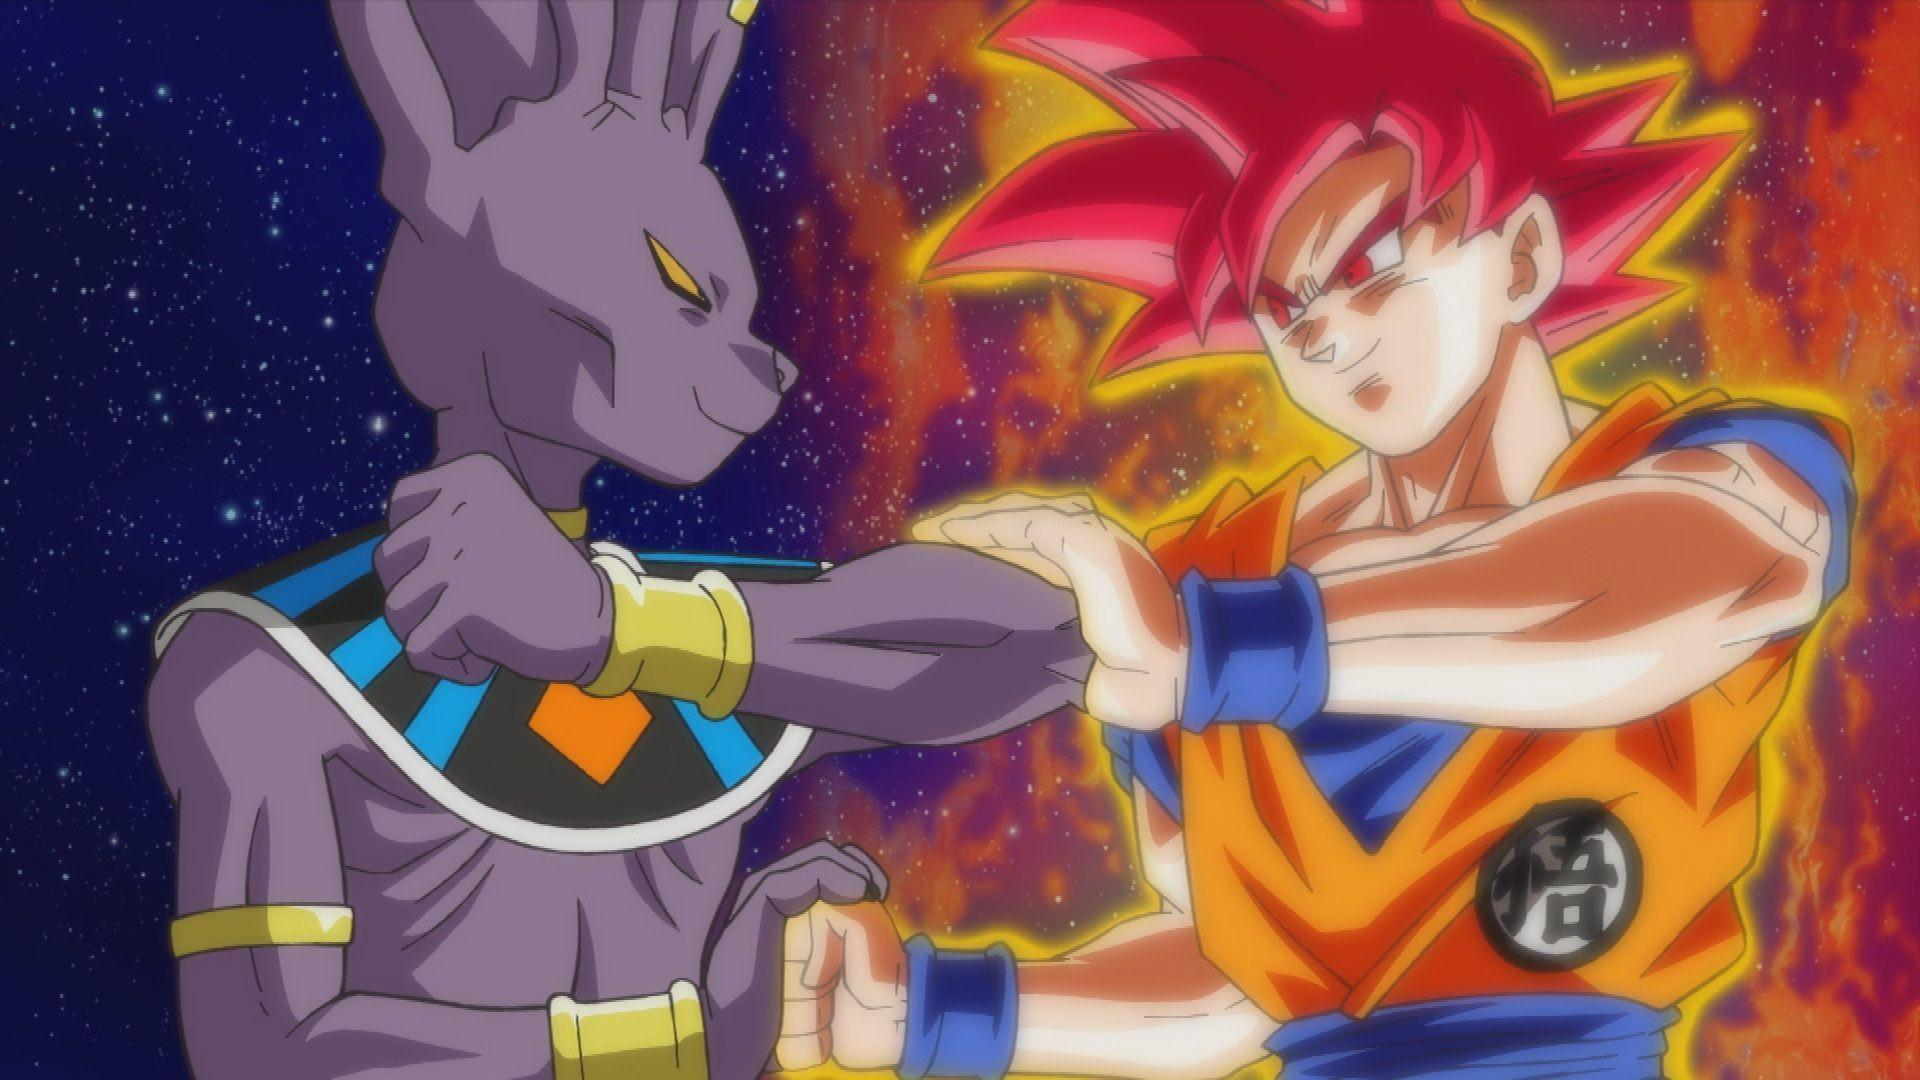 Dragon Ball Z Battle of Gods Bills vs Goku Super Saiyan God